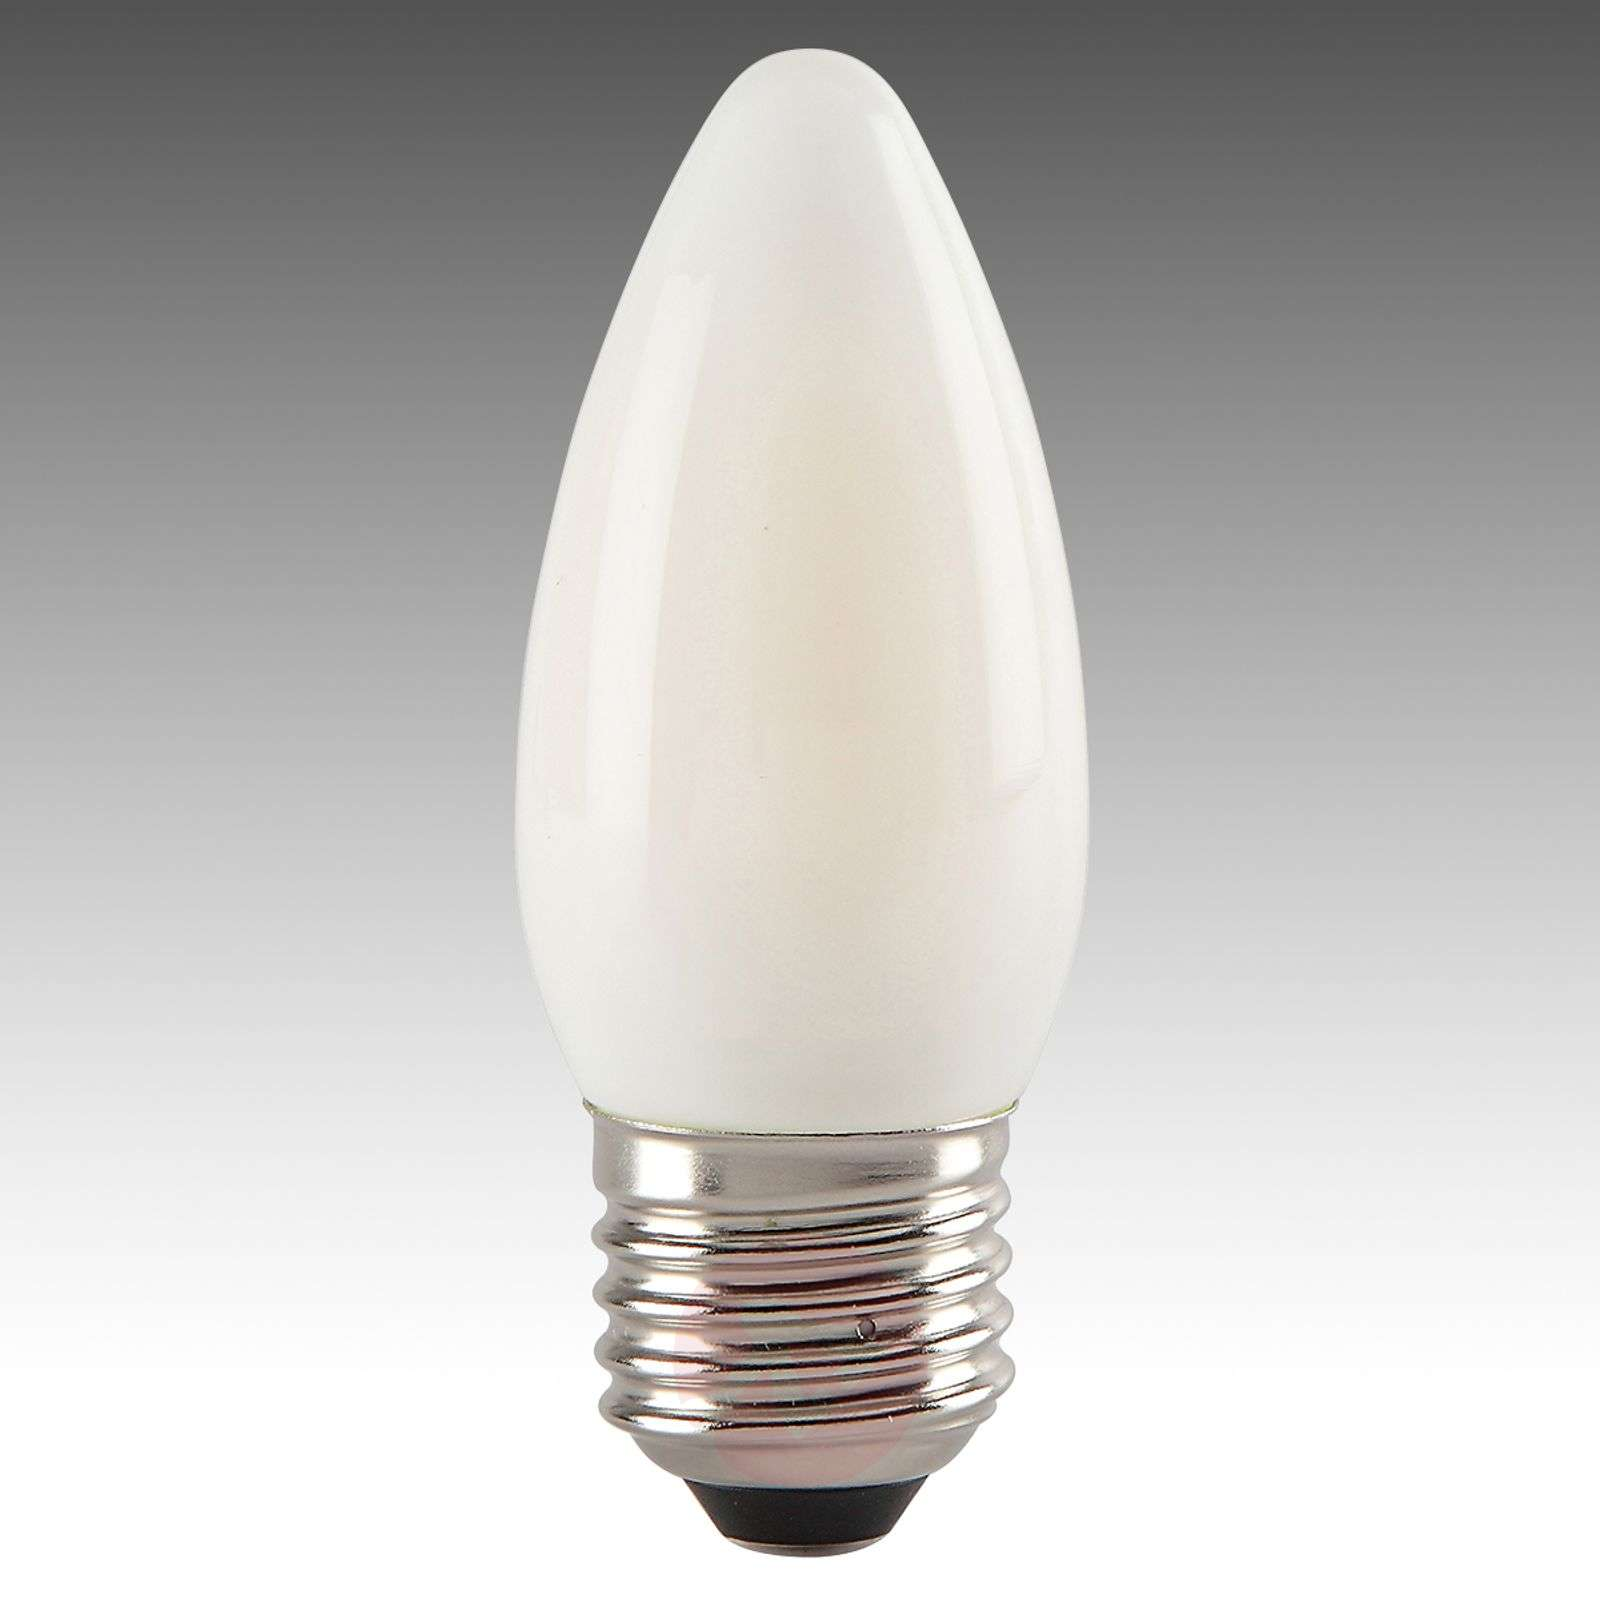 Ampoule flamme LED E27 4 W 827, satinée